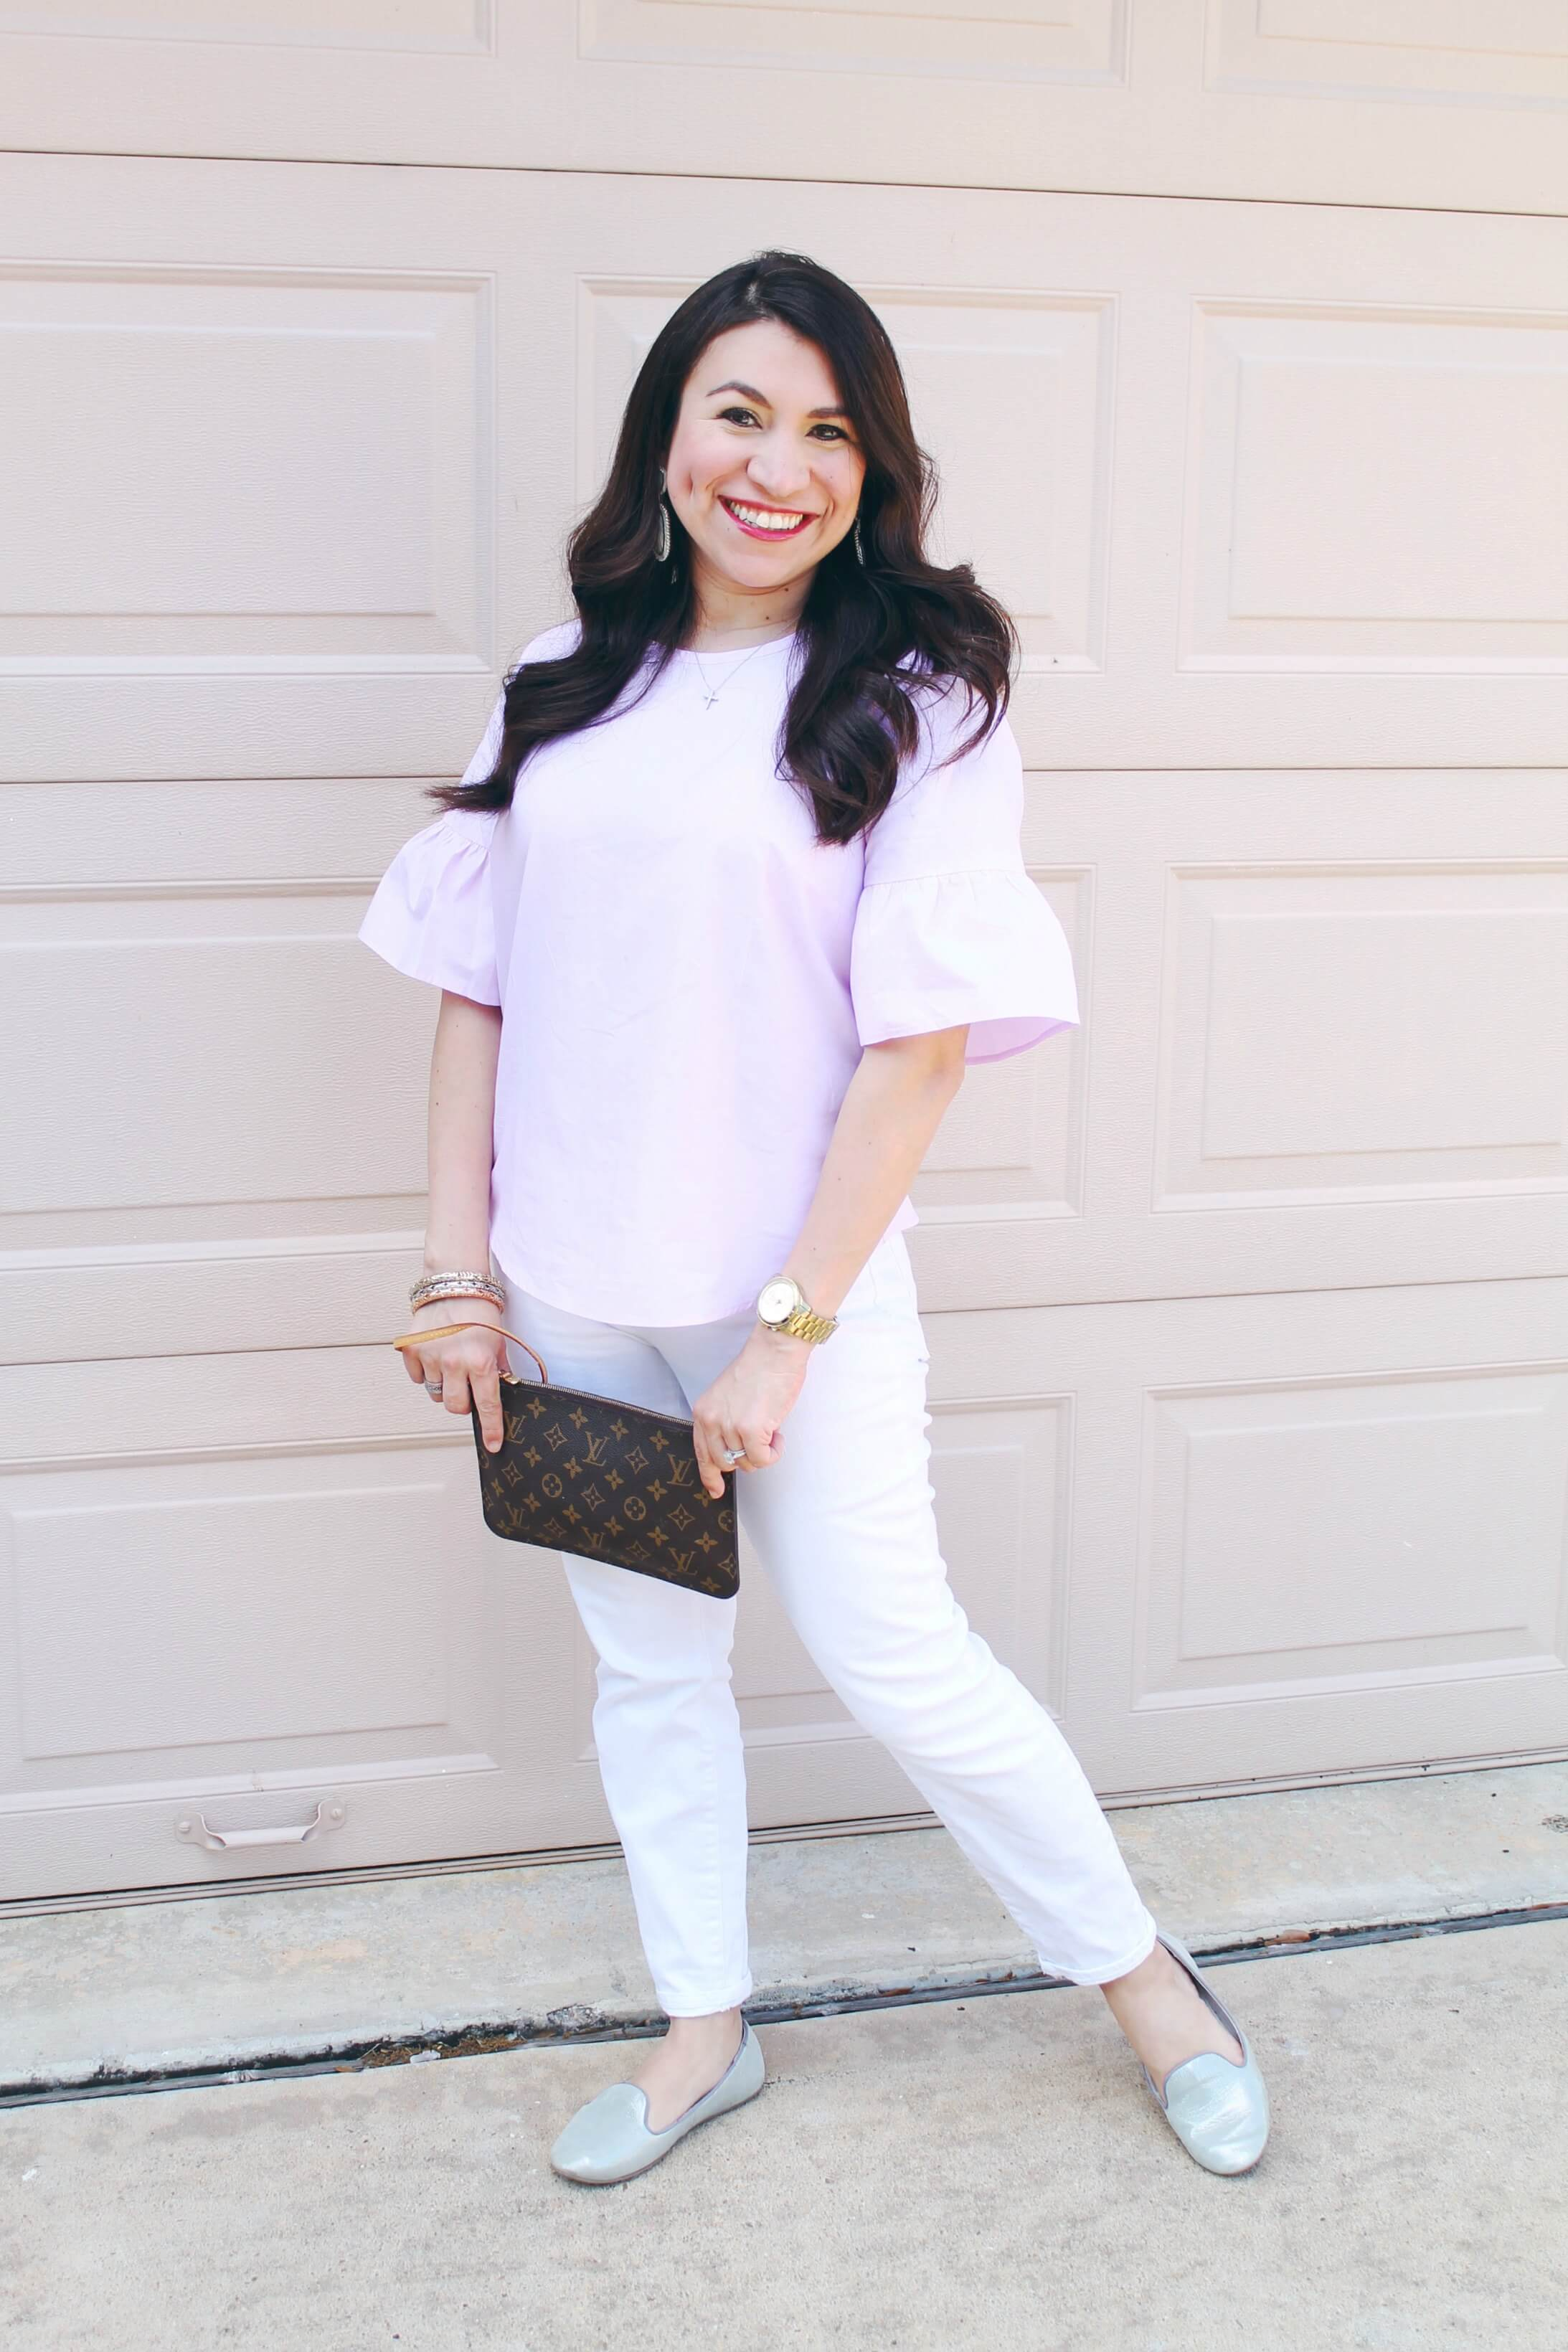 Bell Sleeve Blouse for a Casual Date Night. This is the perfect spring outfit to add to your wardrobe. Don't miss the rest of the series Moms Do Spring Style.